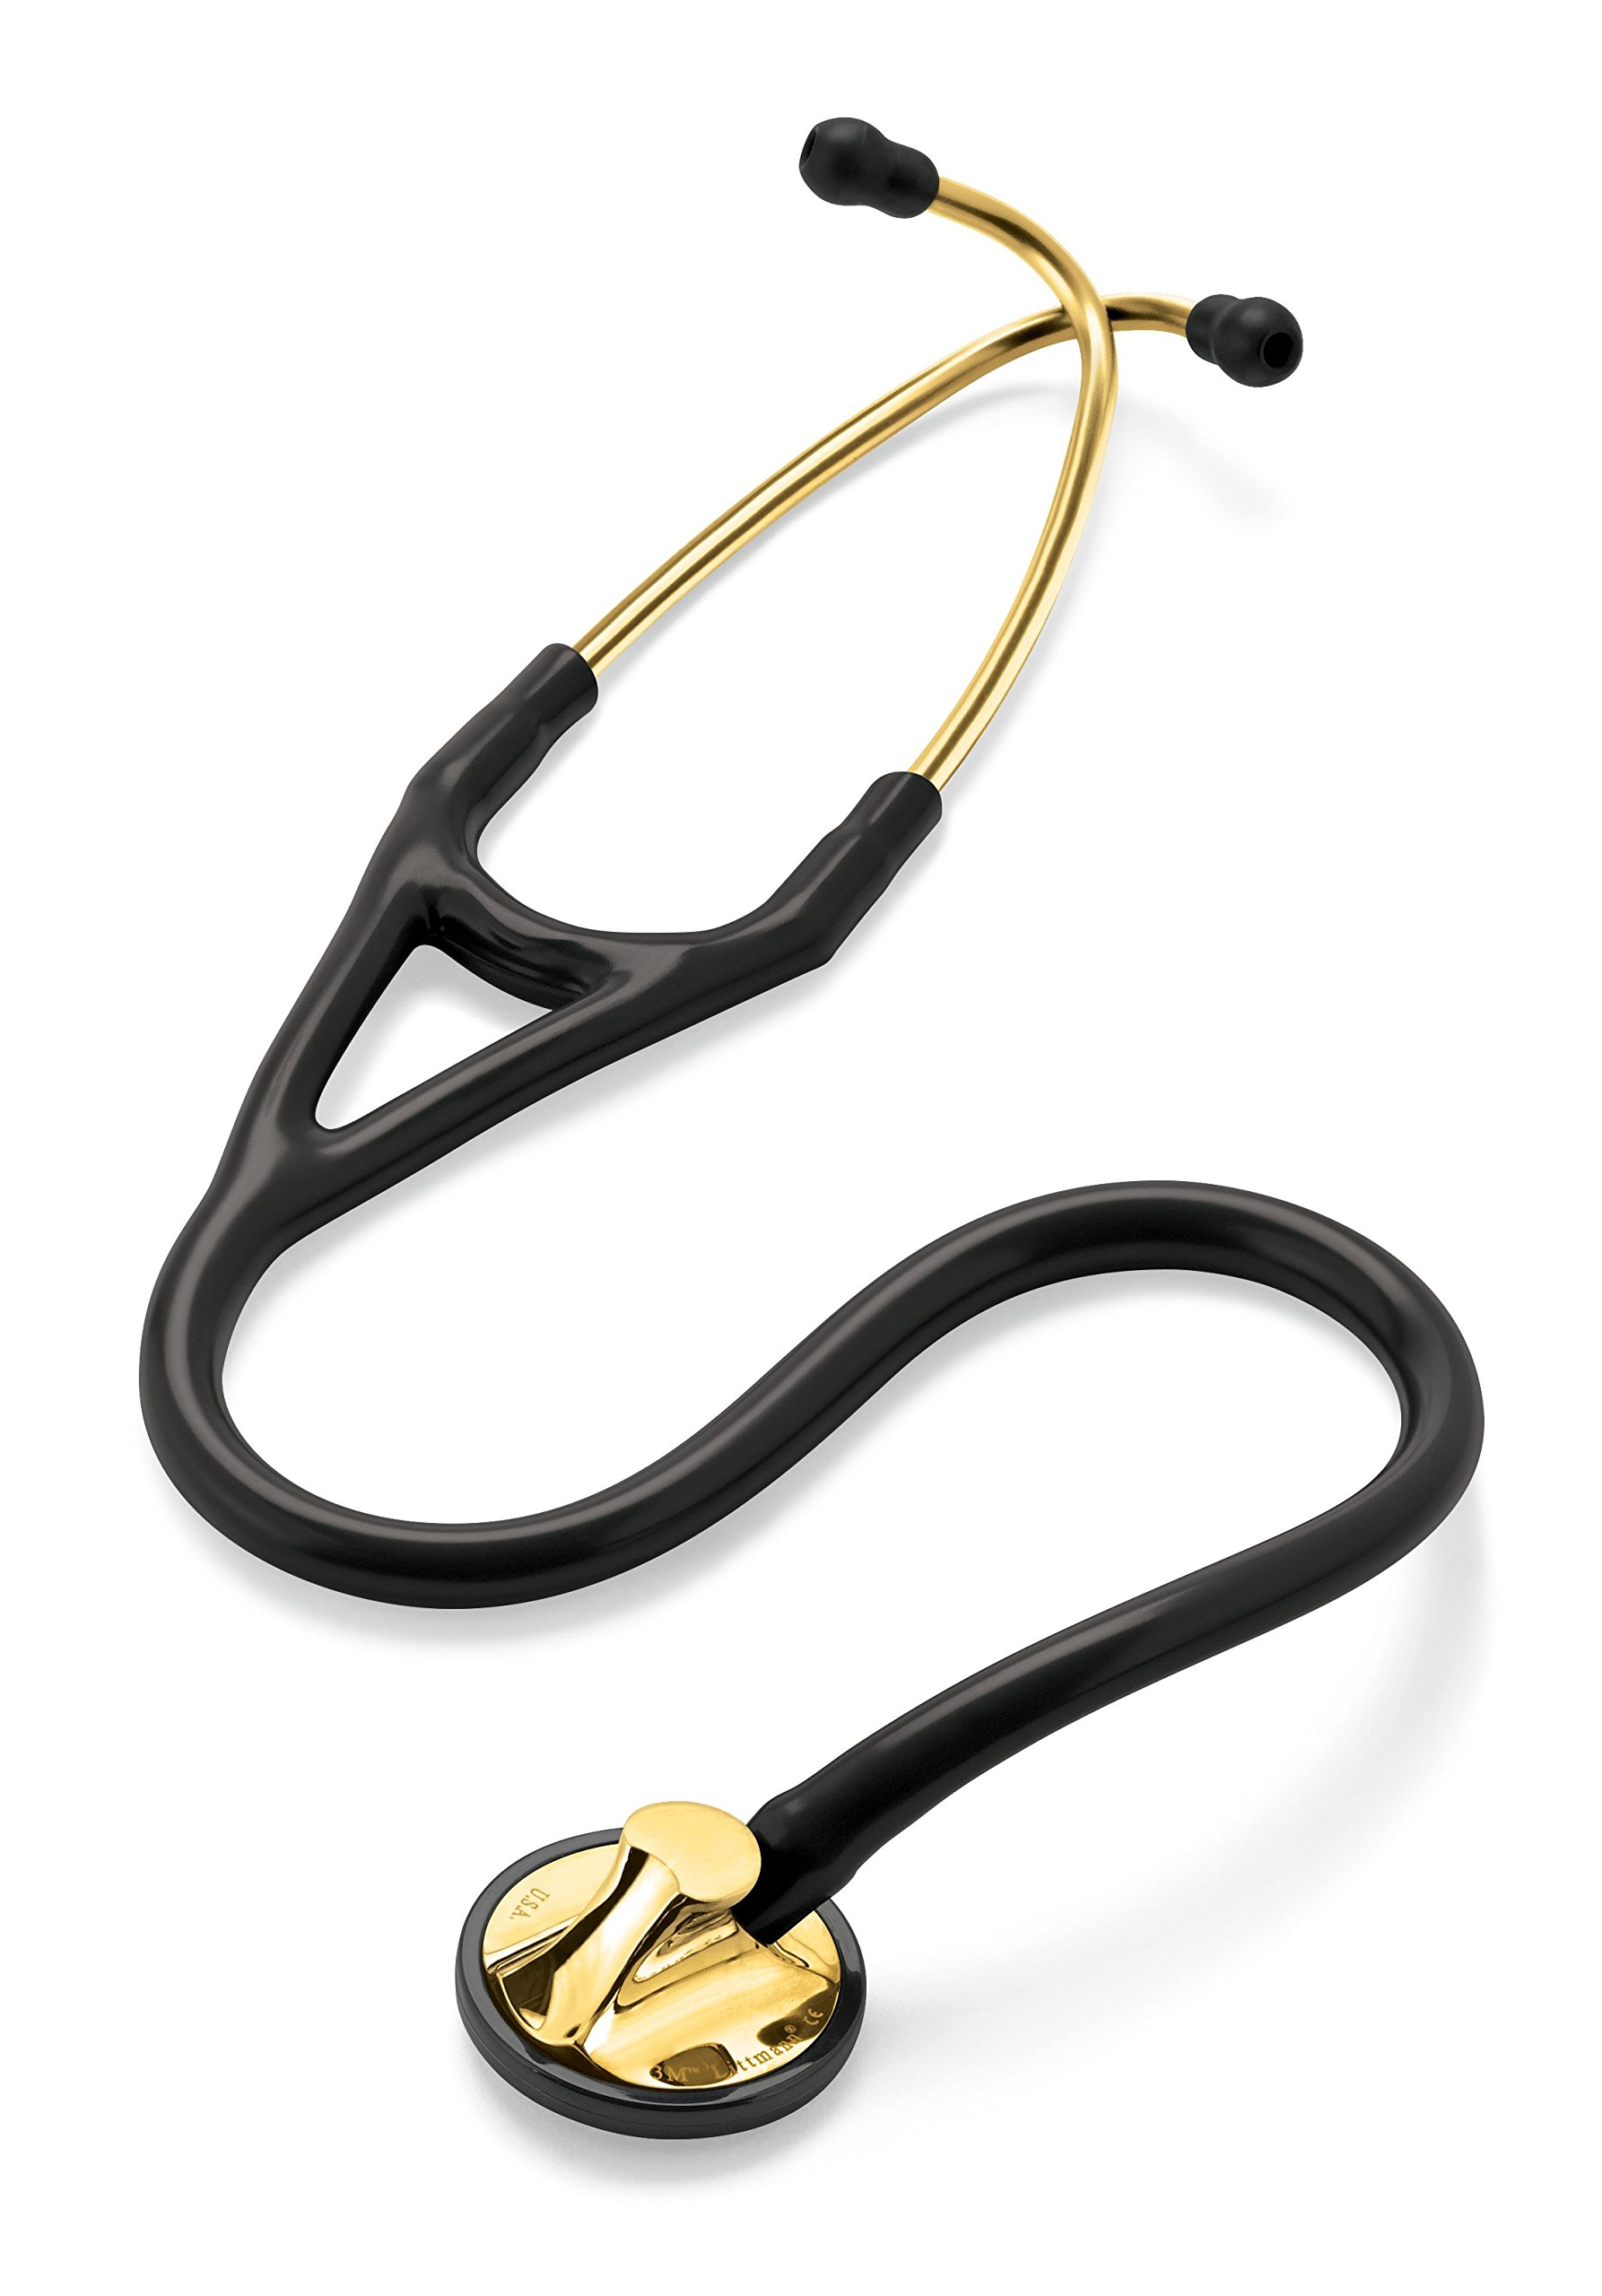 3M Littmann Master Cardiology Stethoscope, Brass-Finish Chestpiece, Black Tube, 27 inch, 2175 by 3M Littmann (Image #4)